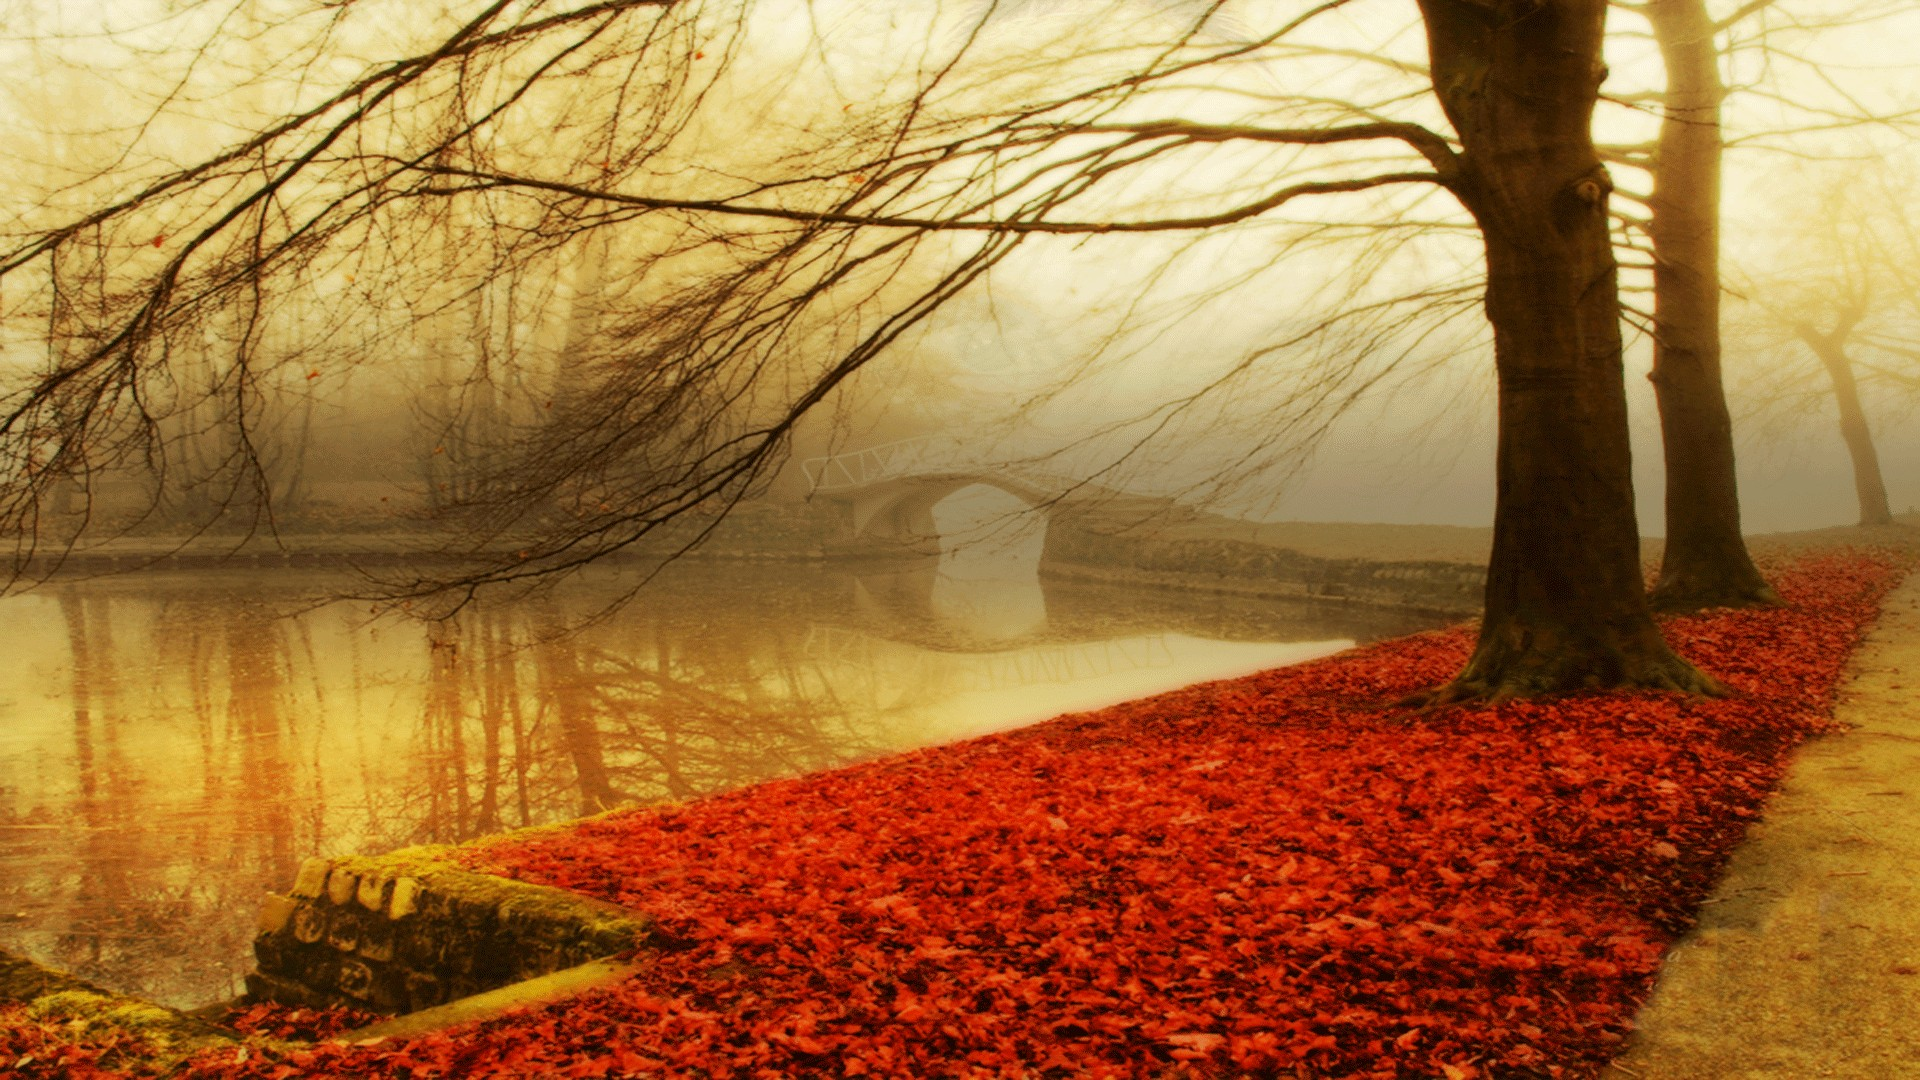 Autumn Wallpaper Hd 183 ① Download Free Wallpapers For